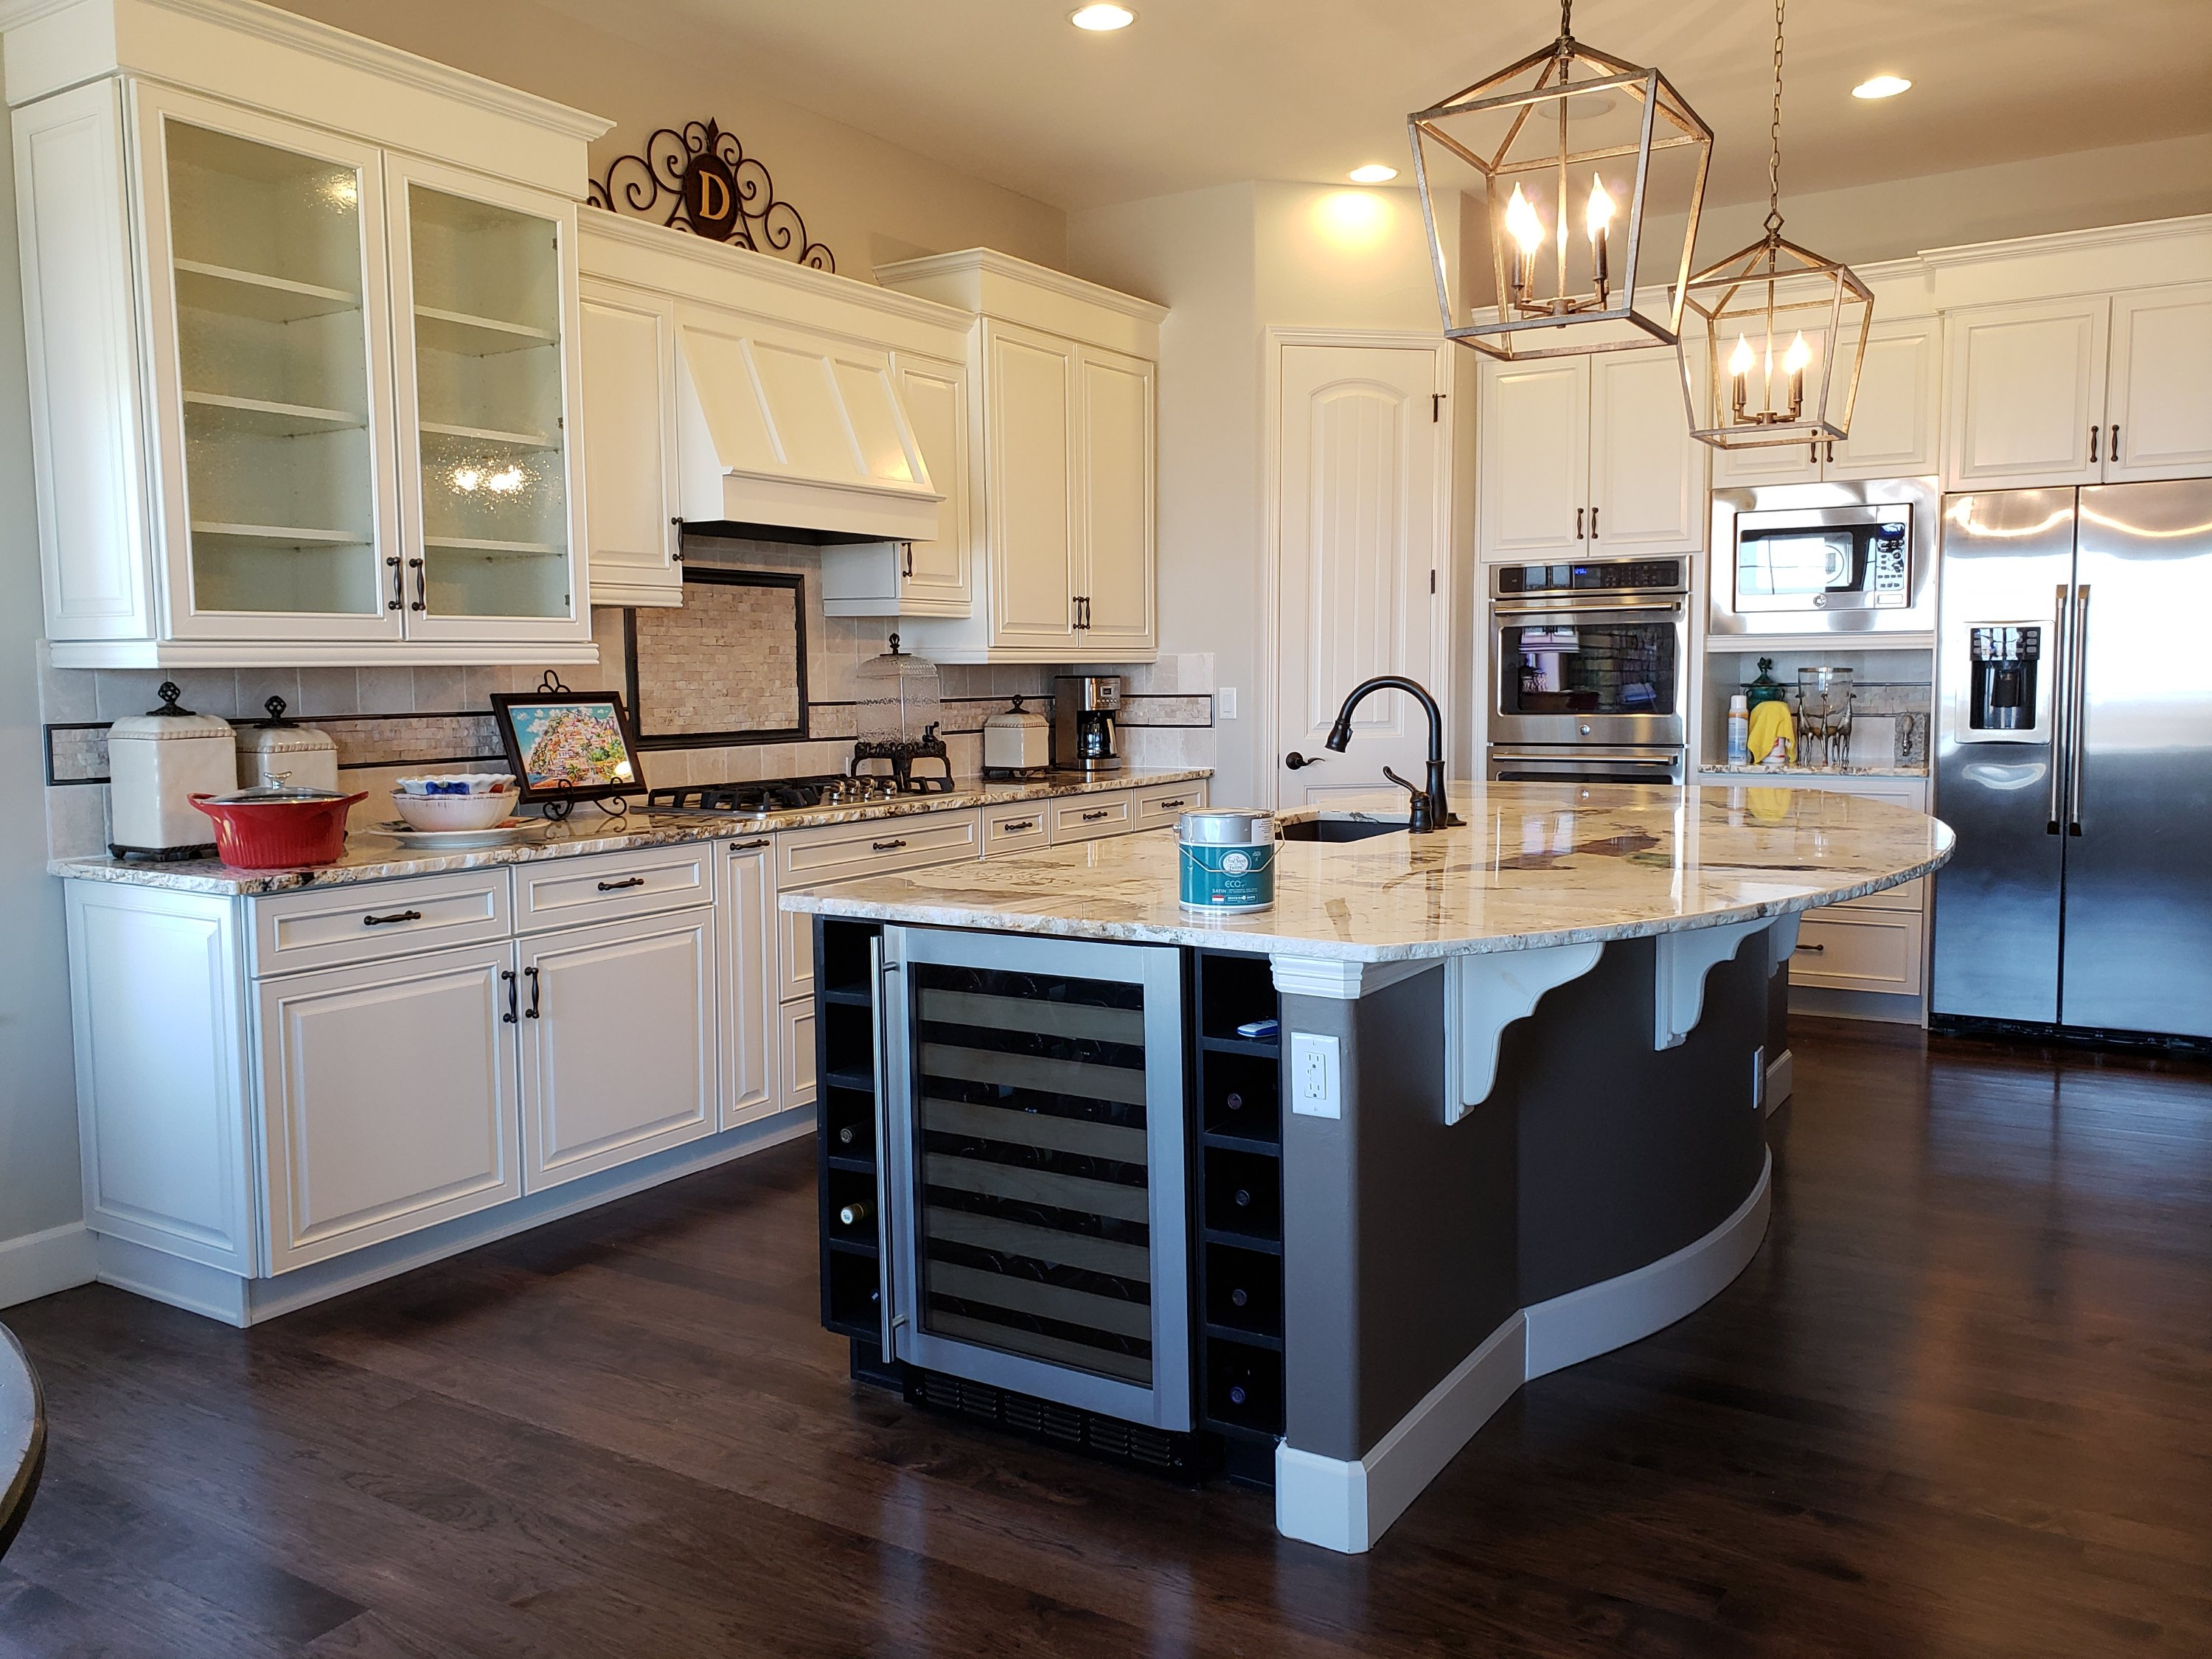 Denver Painters Denver Paint Company Providing Cabinet Painting Interior Painting And Exterior Painting With Over 60 5 Star Reviews